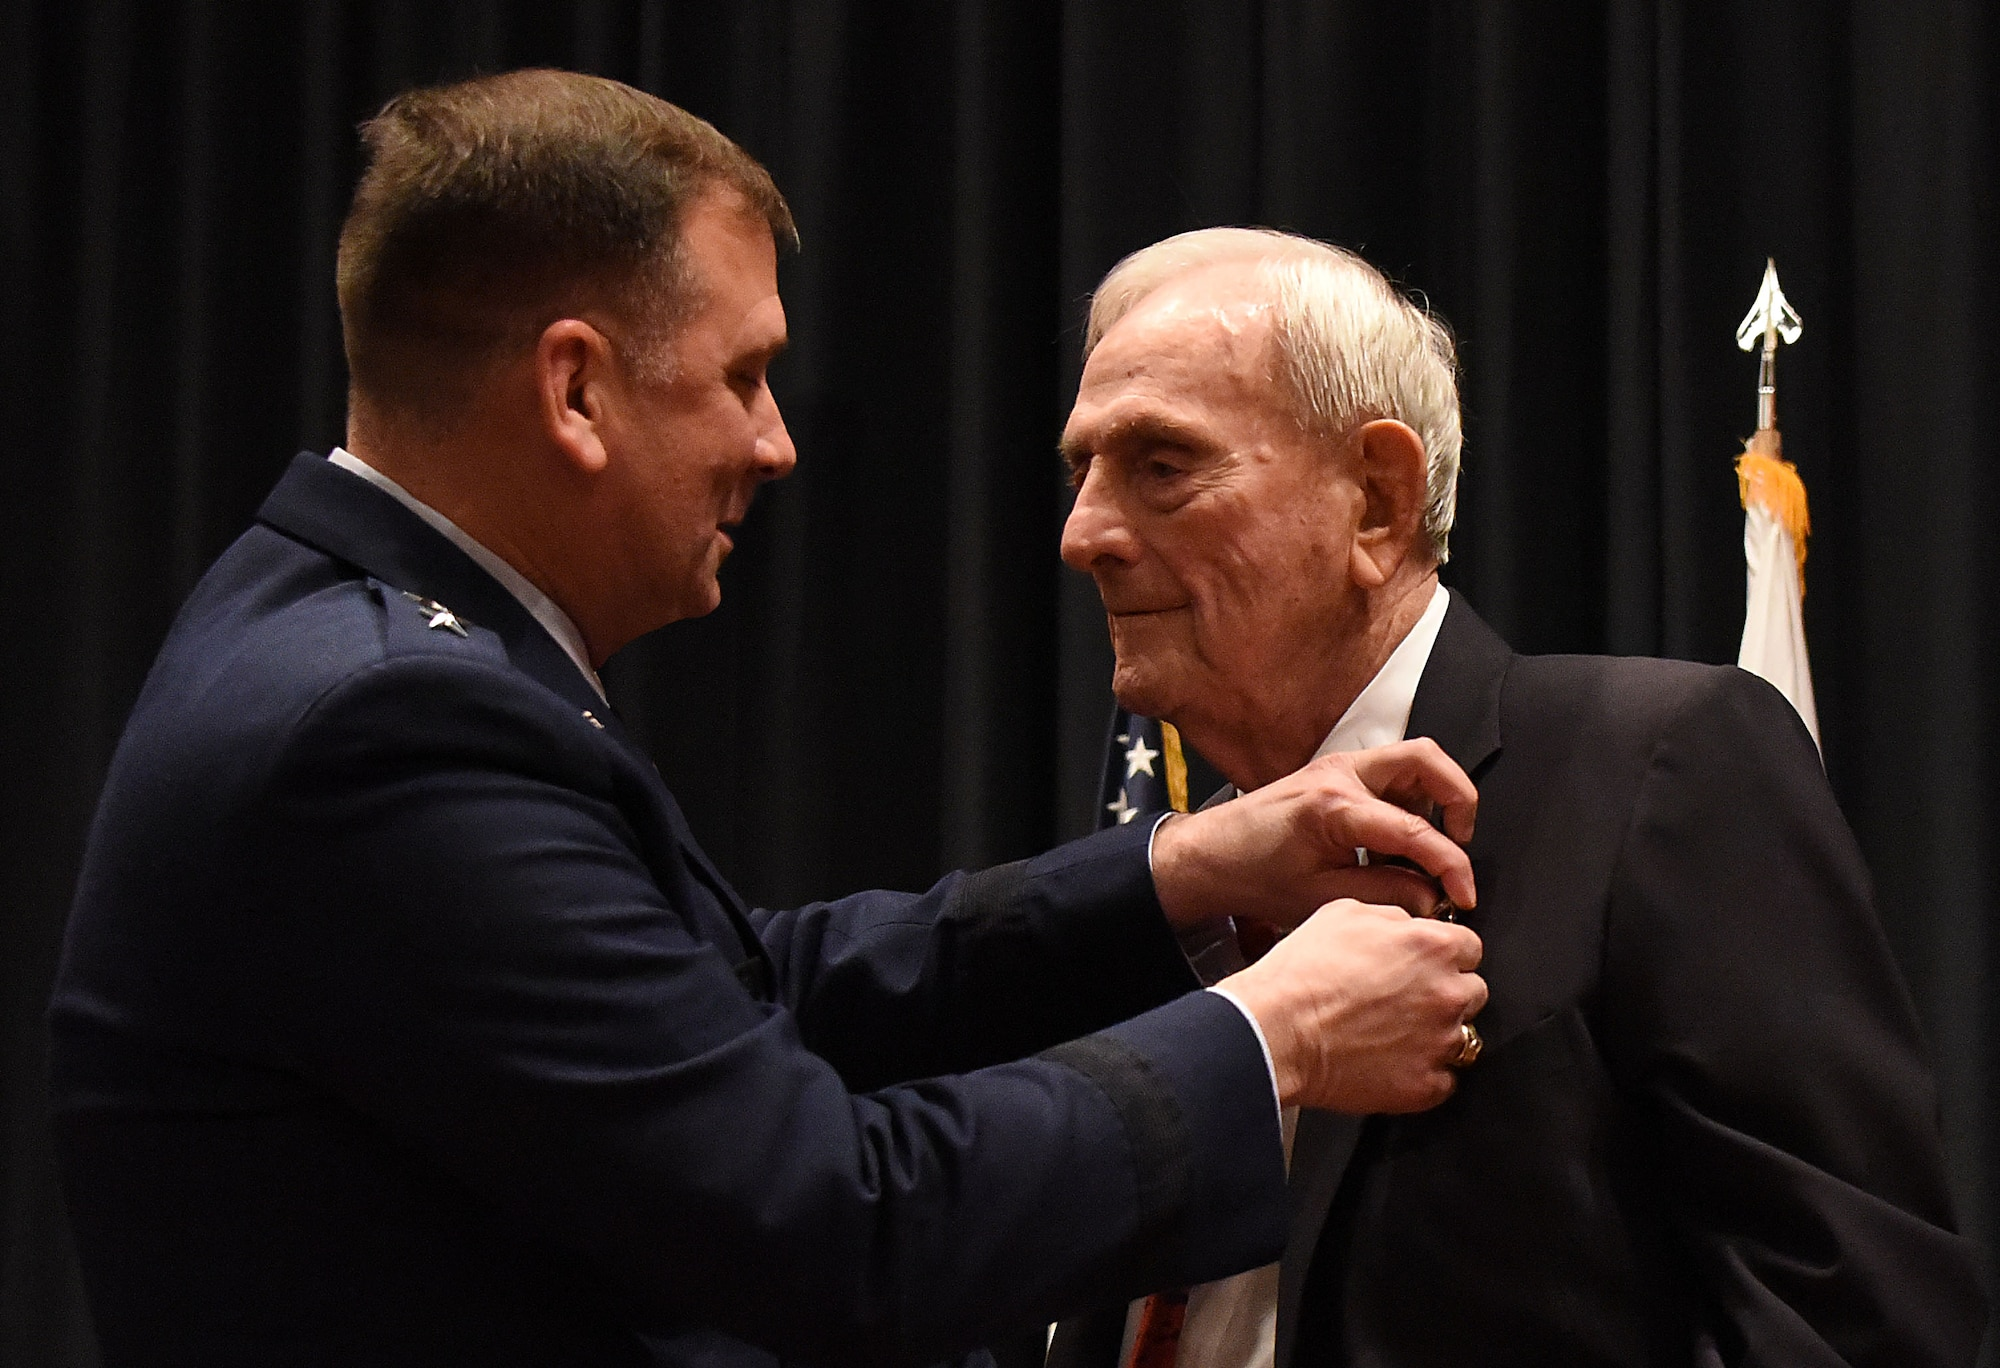 """Maj. Gen. Christopher Bence, U.S. Air Force Expeditionary Center commander, pins the Silver Star on Maj. William """"Joe"""" Schneider during a ceremony on Joint Base McGuire-Dix-Lakehurst, Nov. 1, 2016, for his actions while commanding an 18-plane bombing raid on Feb. 23, 1945 over Italy. (U.S. Air Force photo by Tech. Sgt. Jamie Powell)"""